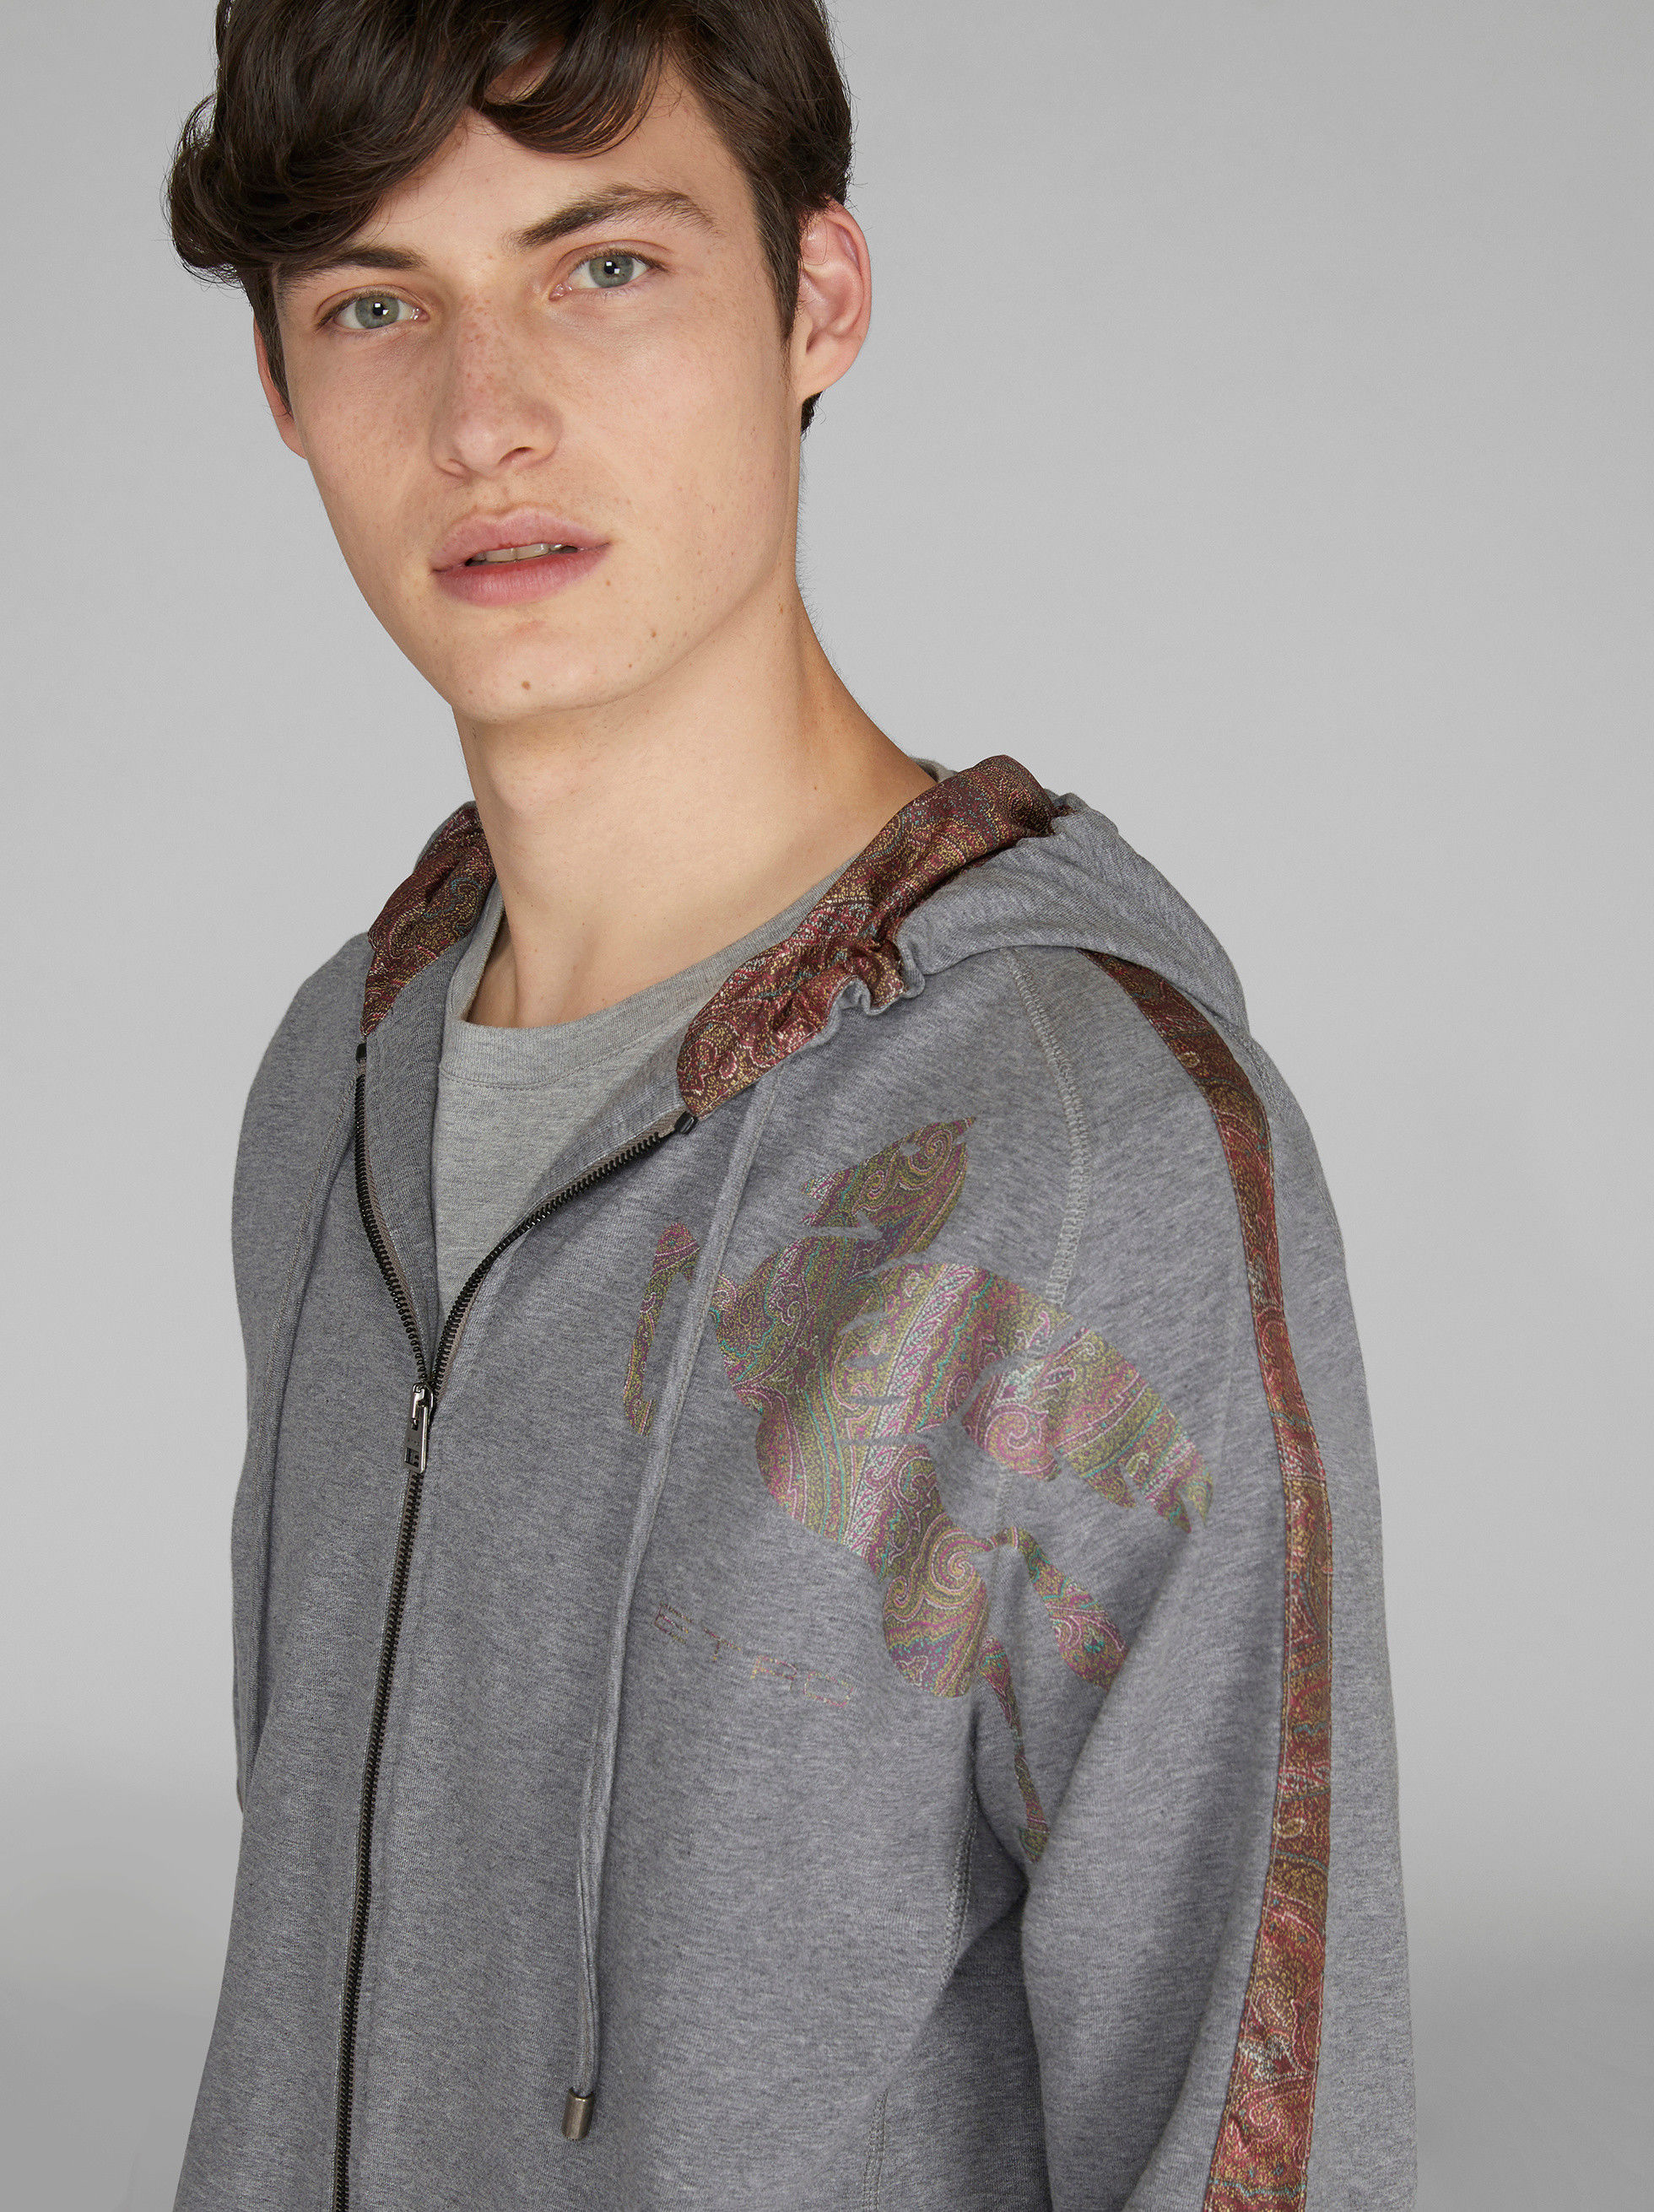 JERSEY SWEATSHIRT WITH PAISLEY DETAILS